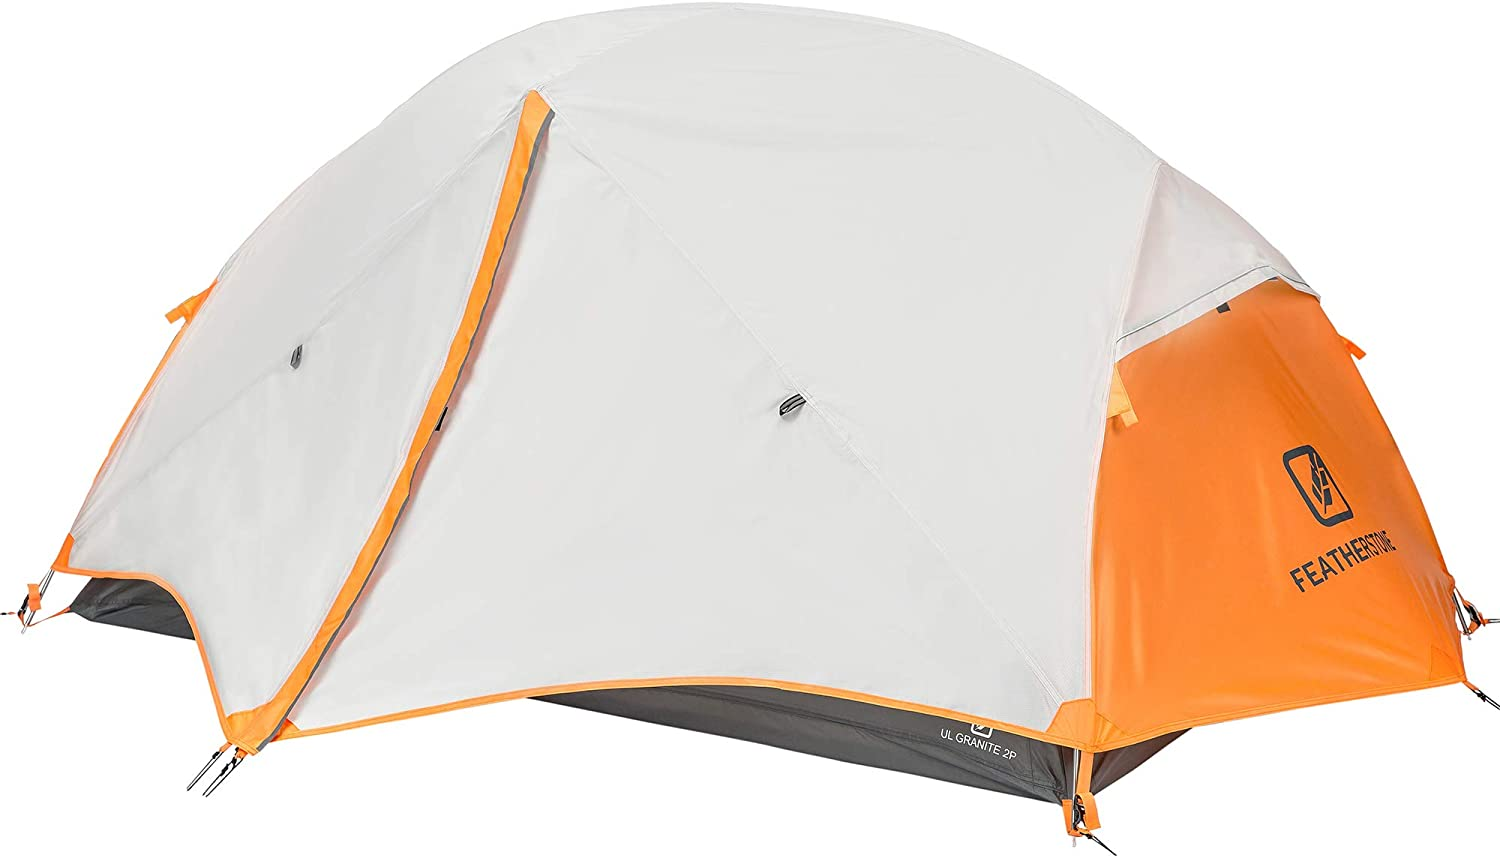 Featherstone Backpack Tent - best tent for rain and wind